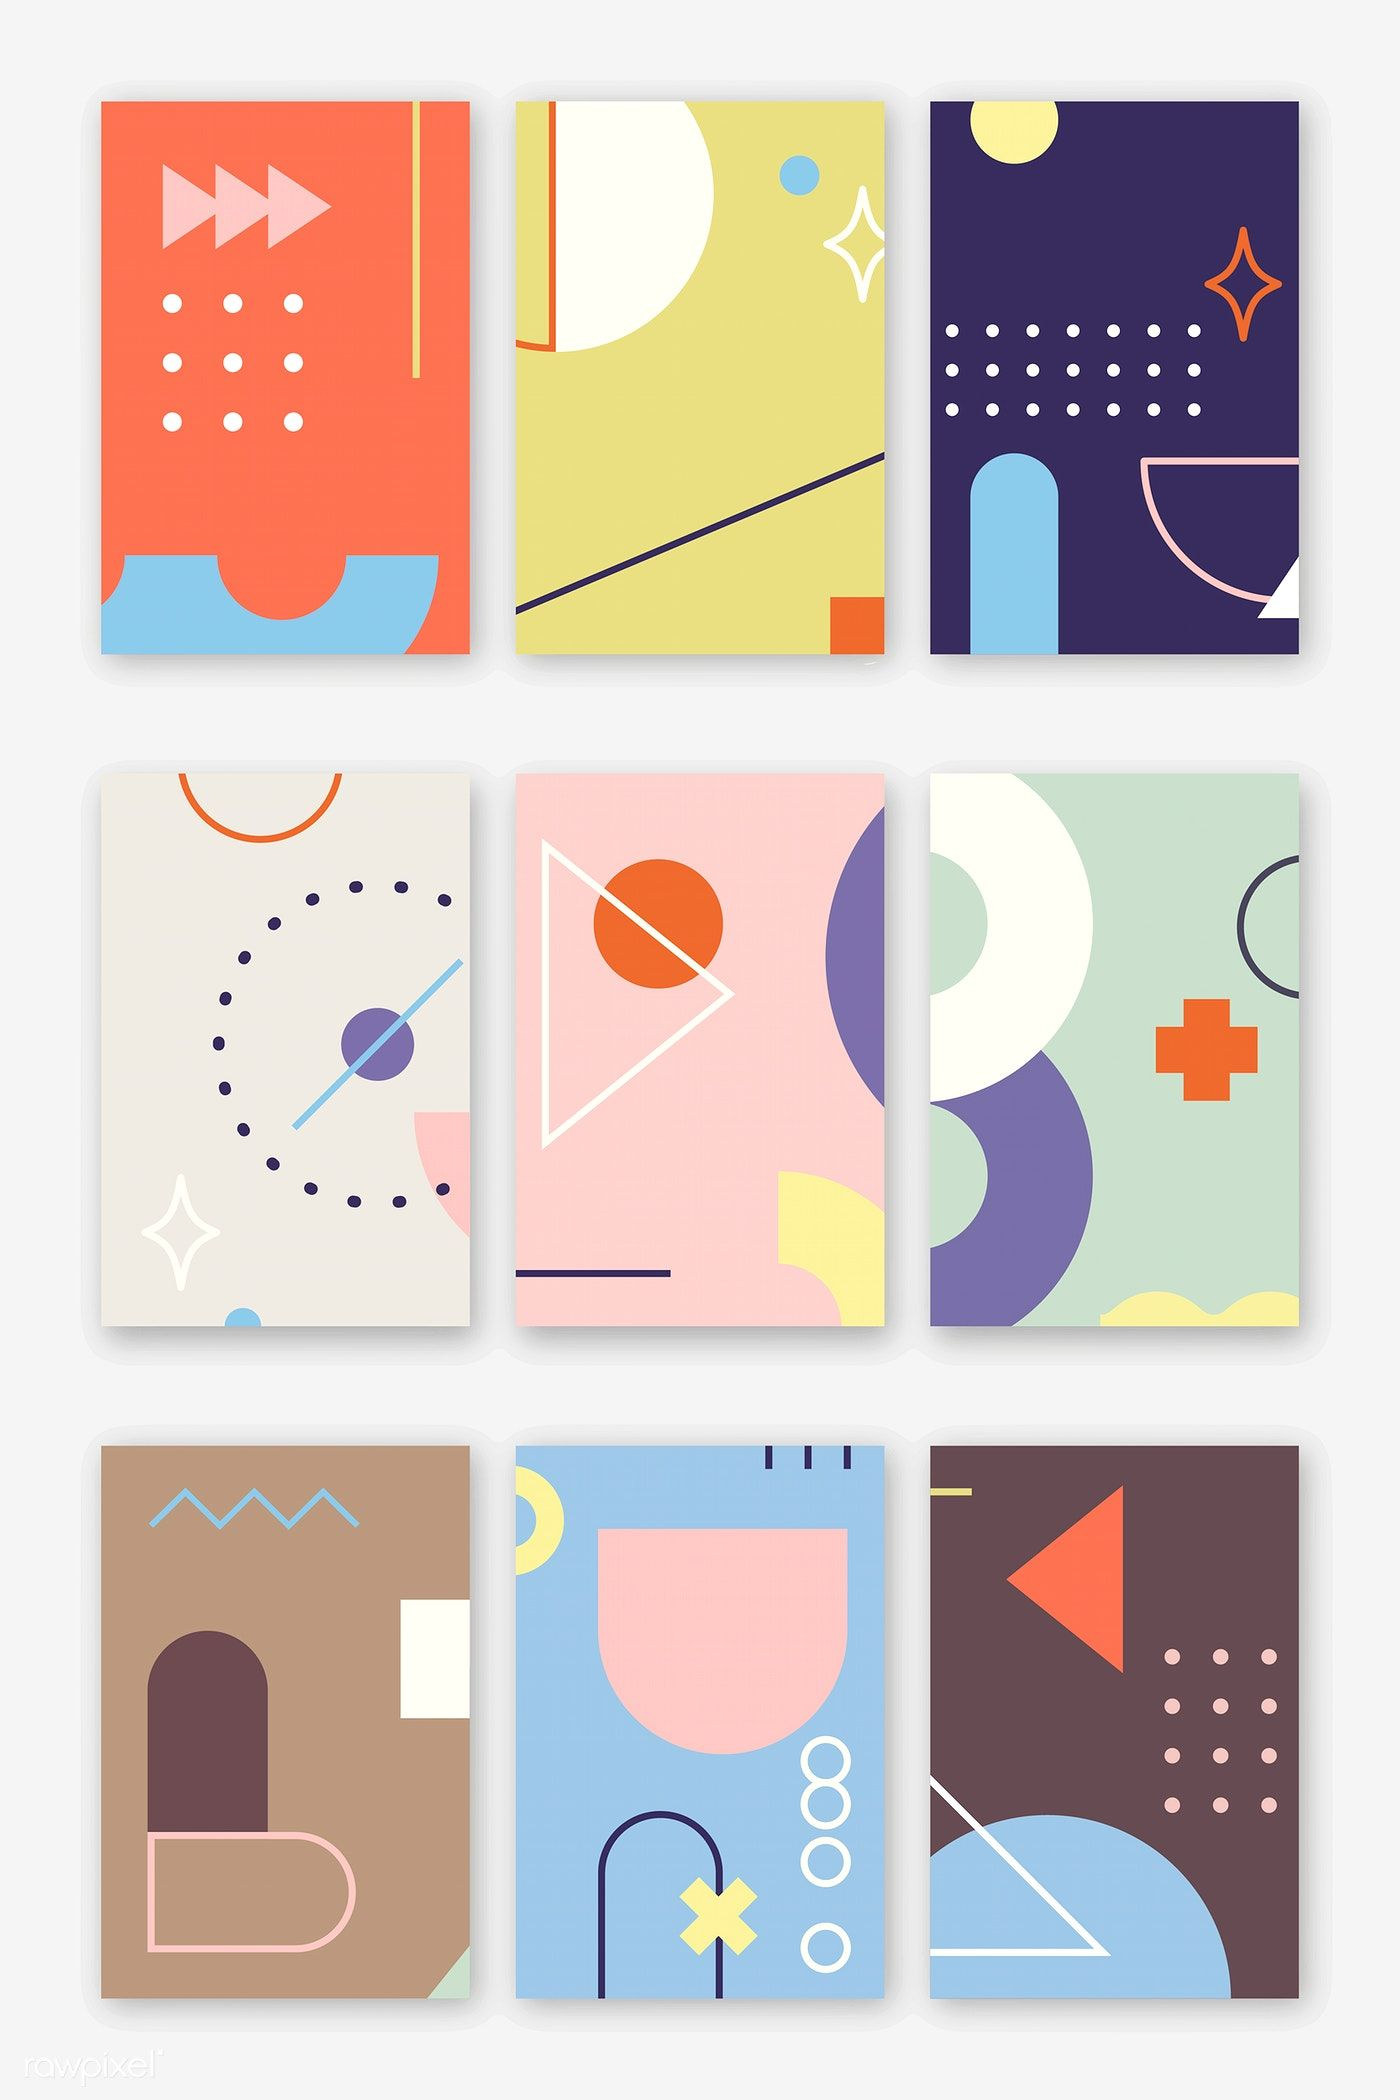 Geometric patterned banners collection vector | premium image by rawpixel.com / katie